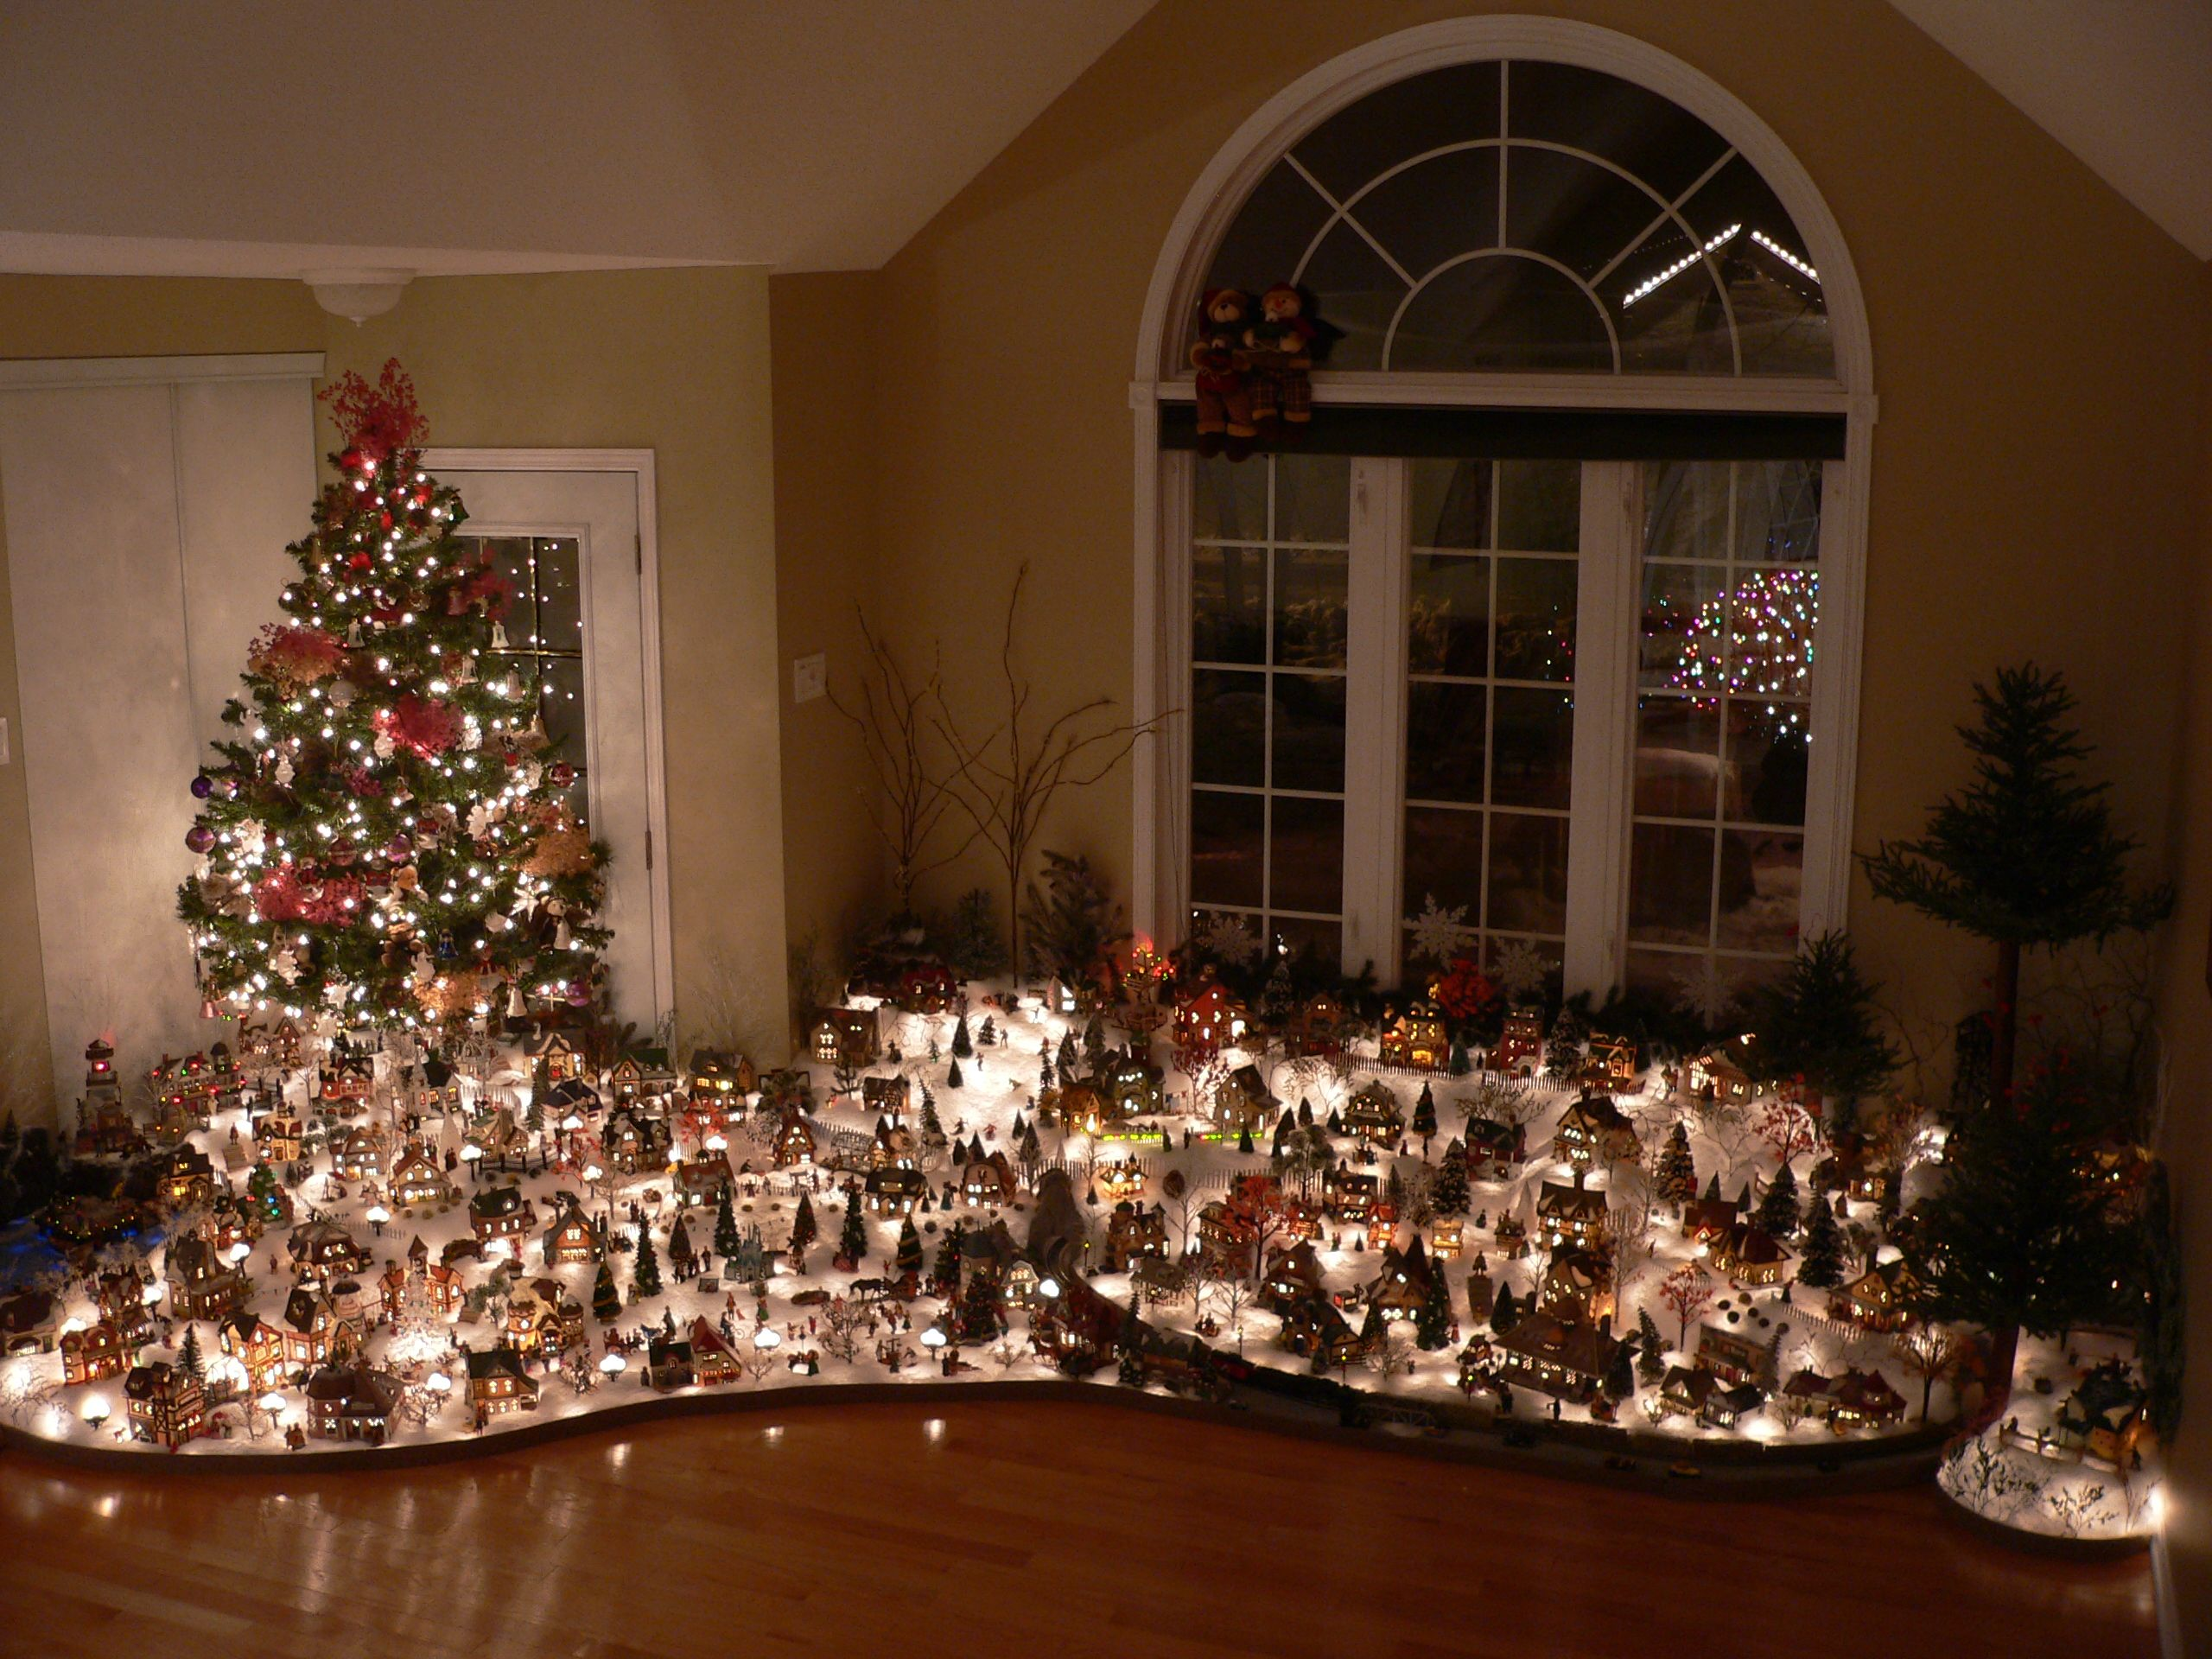 32 best christmas village images on Pinterest | Christmas villages ...